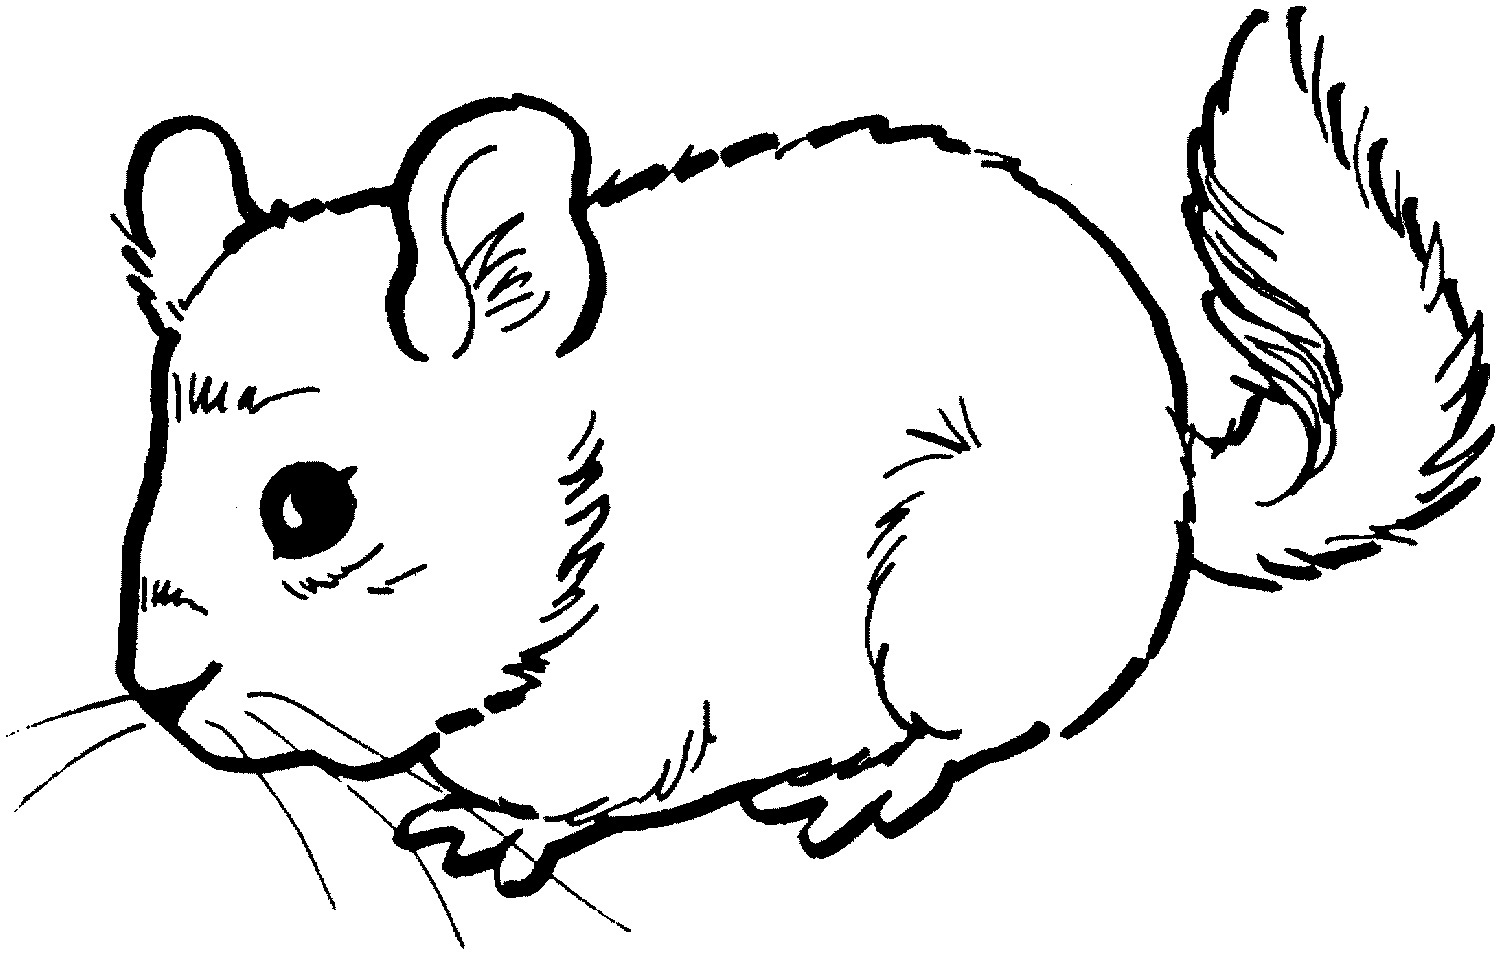 mouse coloring page mouse coloring page animal coloring page picgifscom coloring mouse page